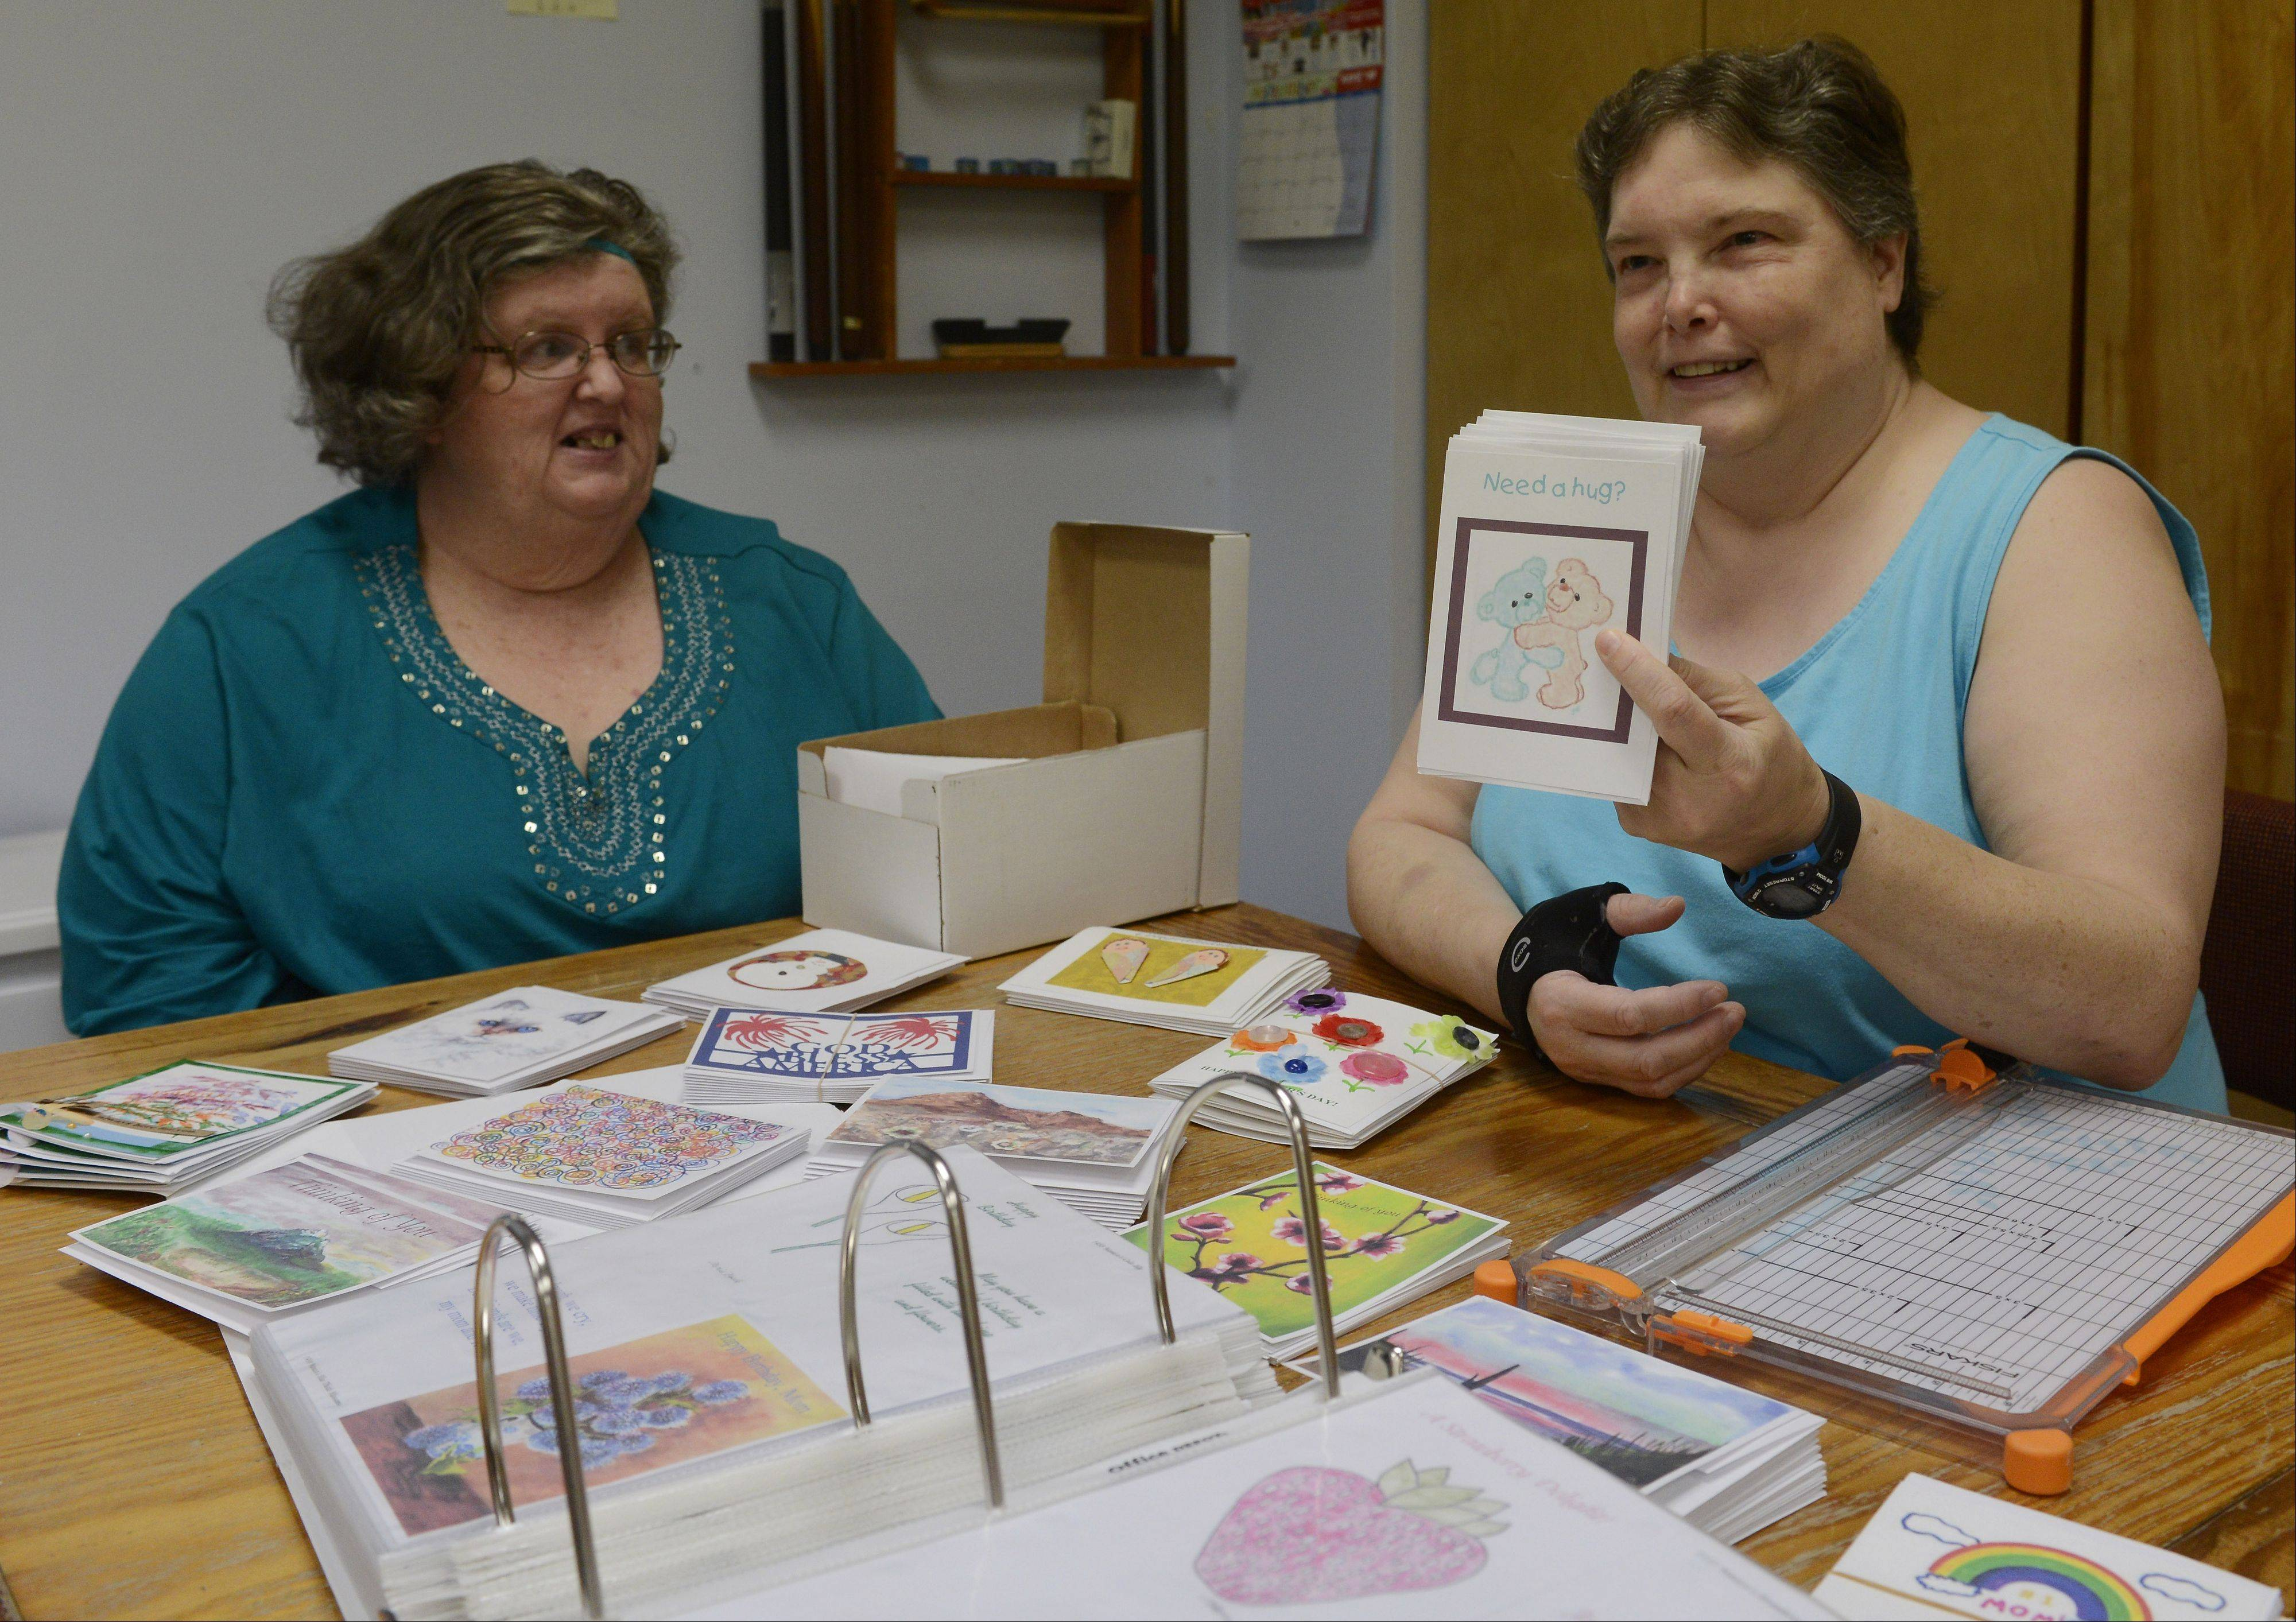 Artists and managers in a not-for-profit greeting card business run by people with mental illnesses, Mary Phelan, left, and Ginger Brooks show off a variety of cards from The Card Project's vast inventory. Sales of greeting cards, right, help with the recovery process at the Kenneth Young Center in Elk Grove Village.